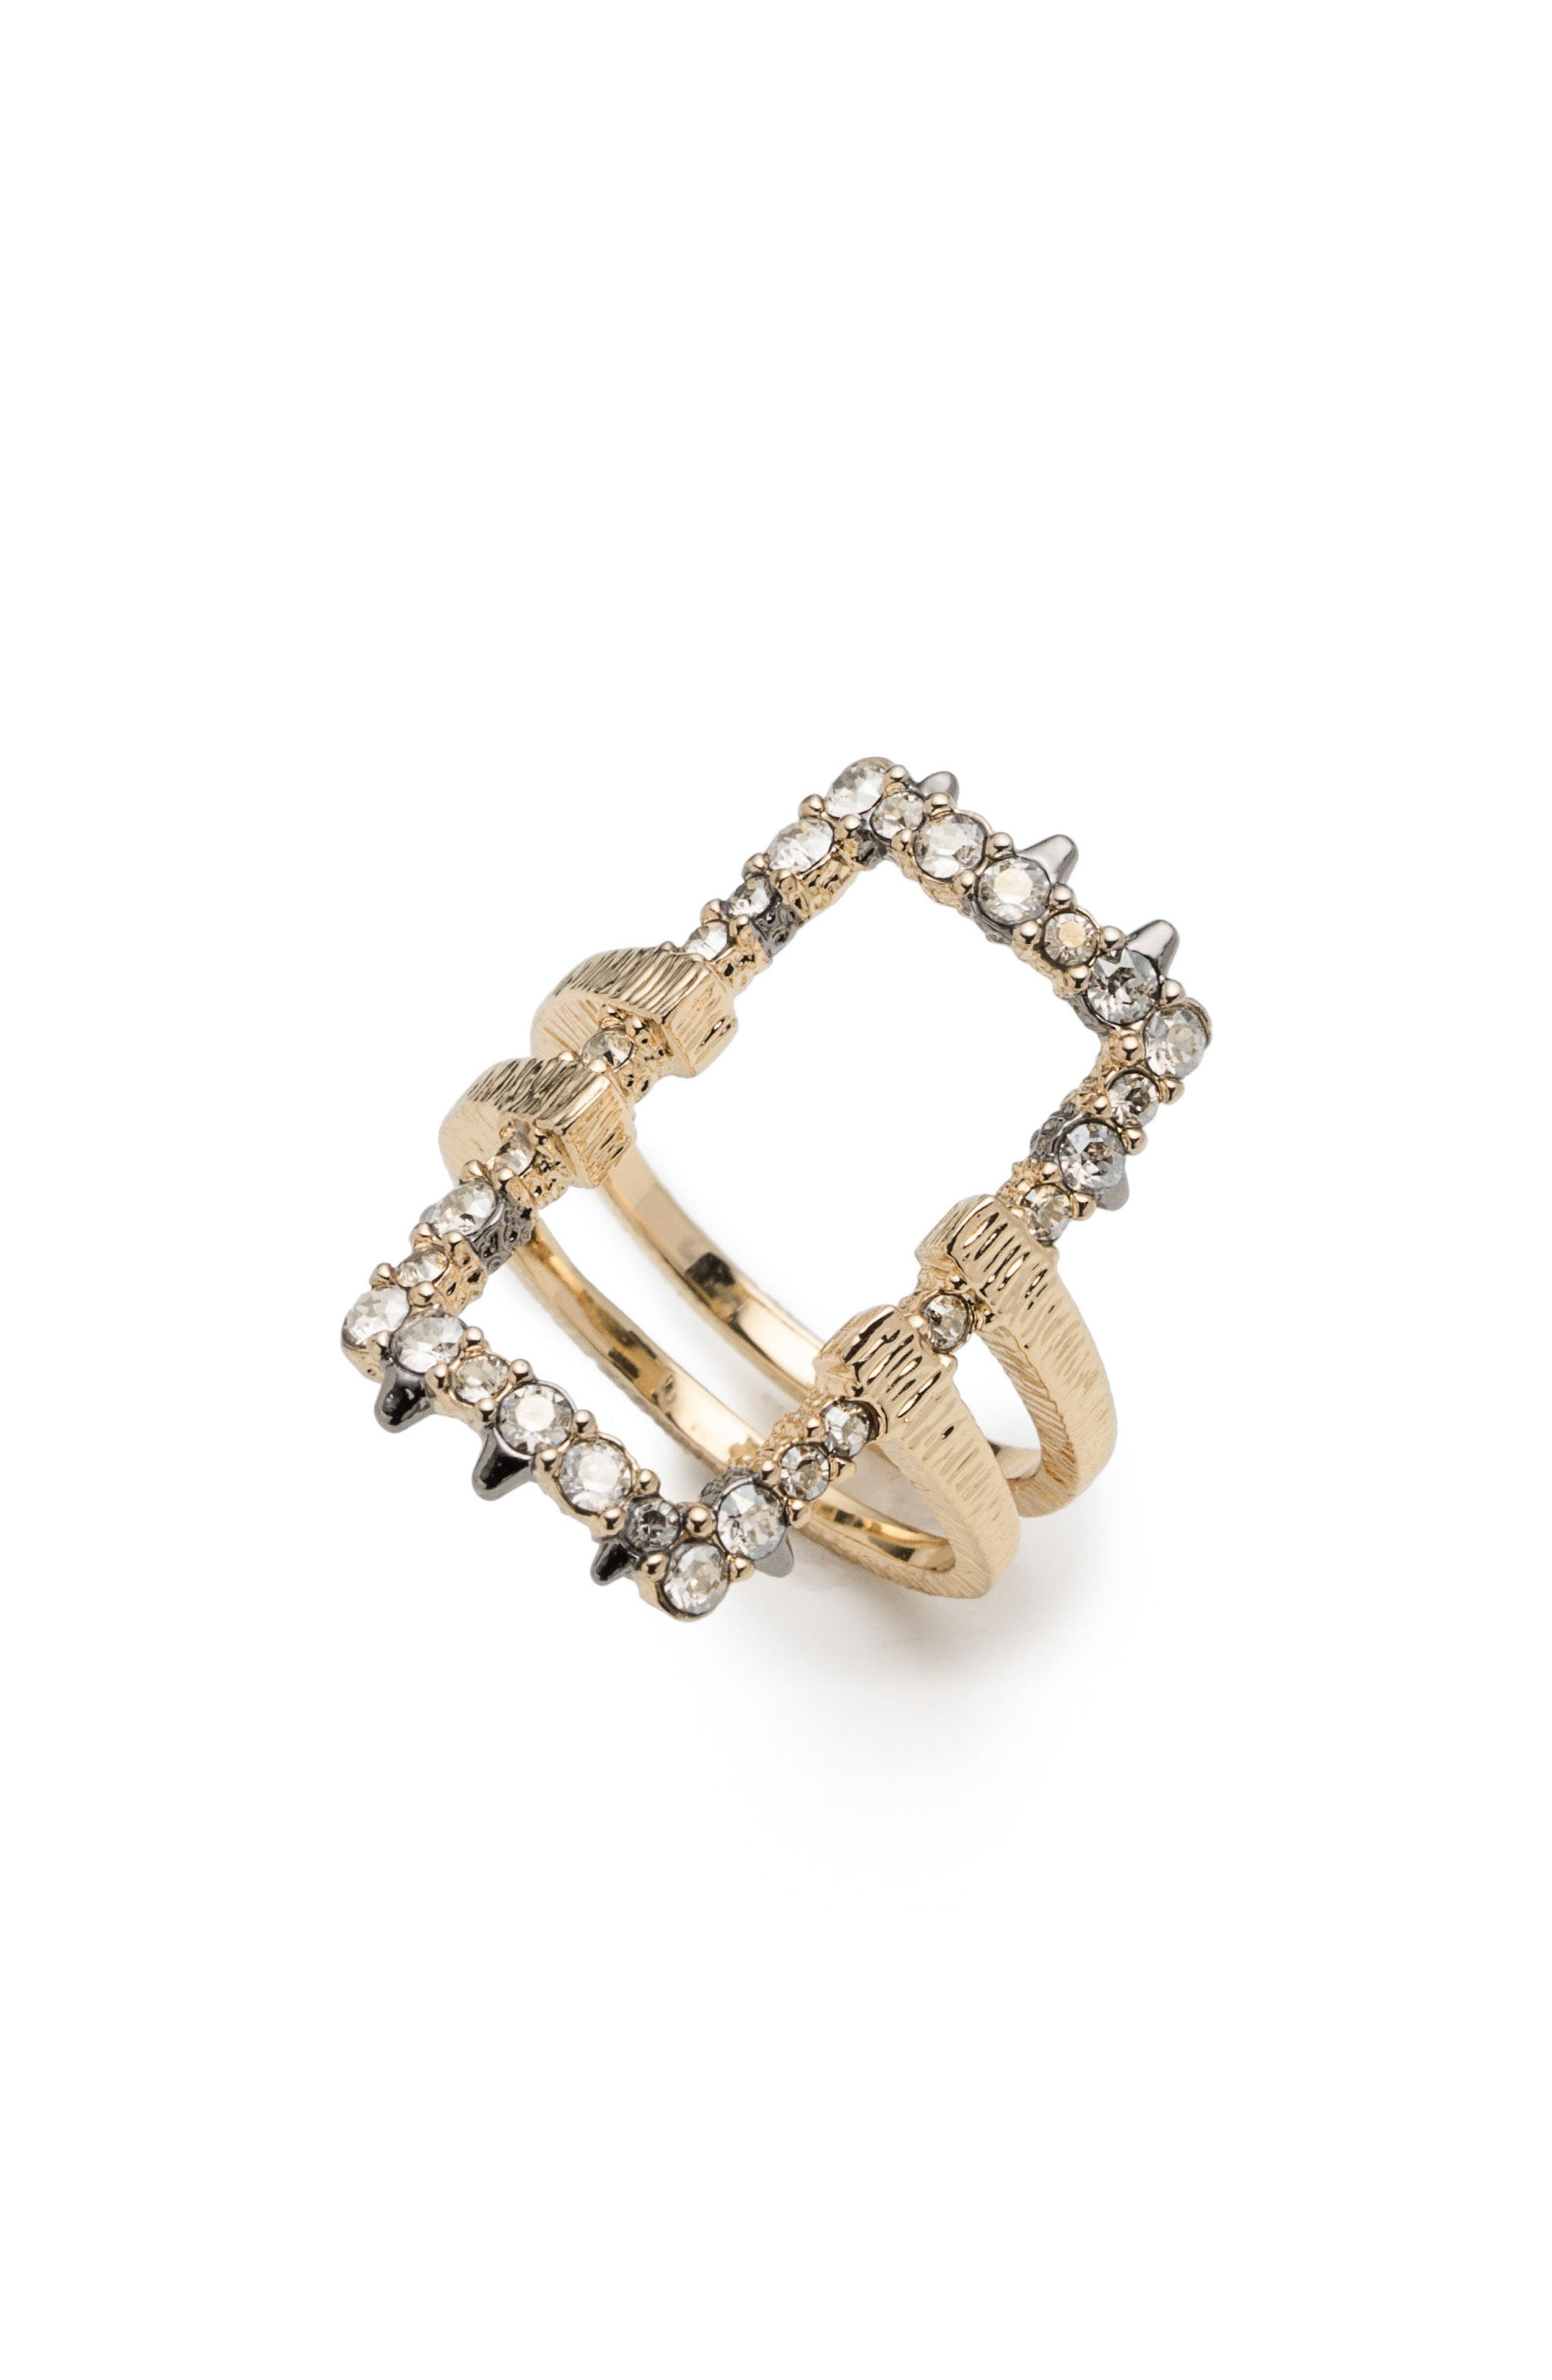 Main Image - Alexis Bittar Elements Crystal Encrusted Ring